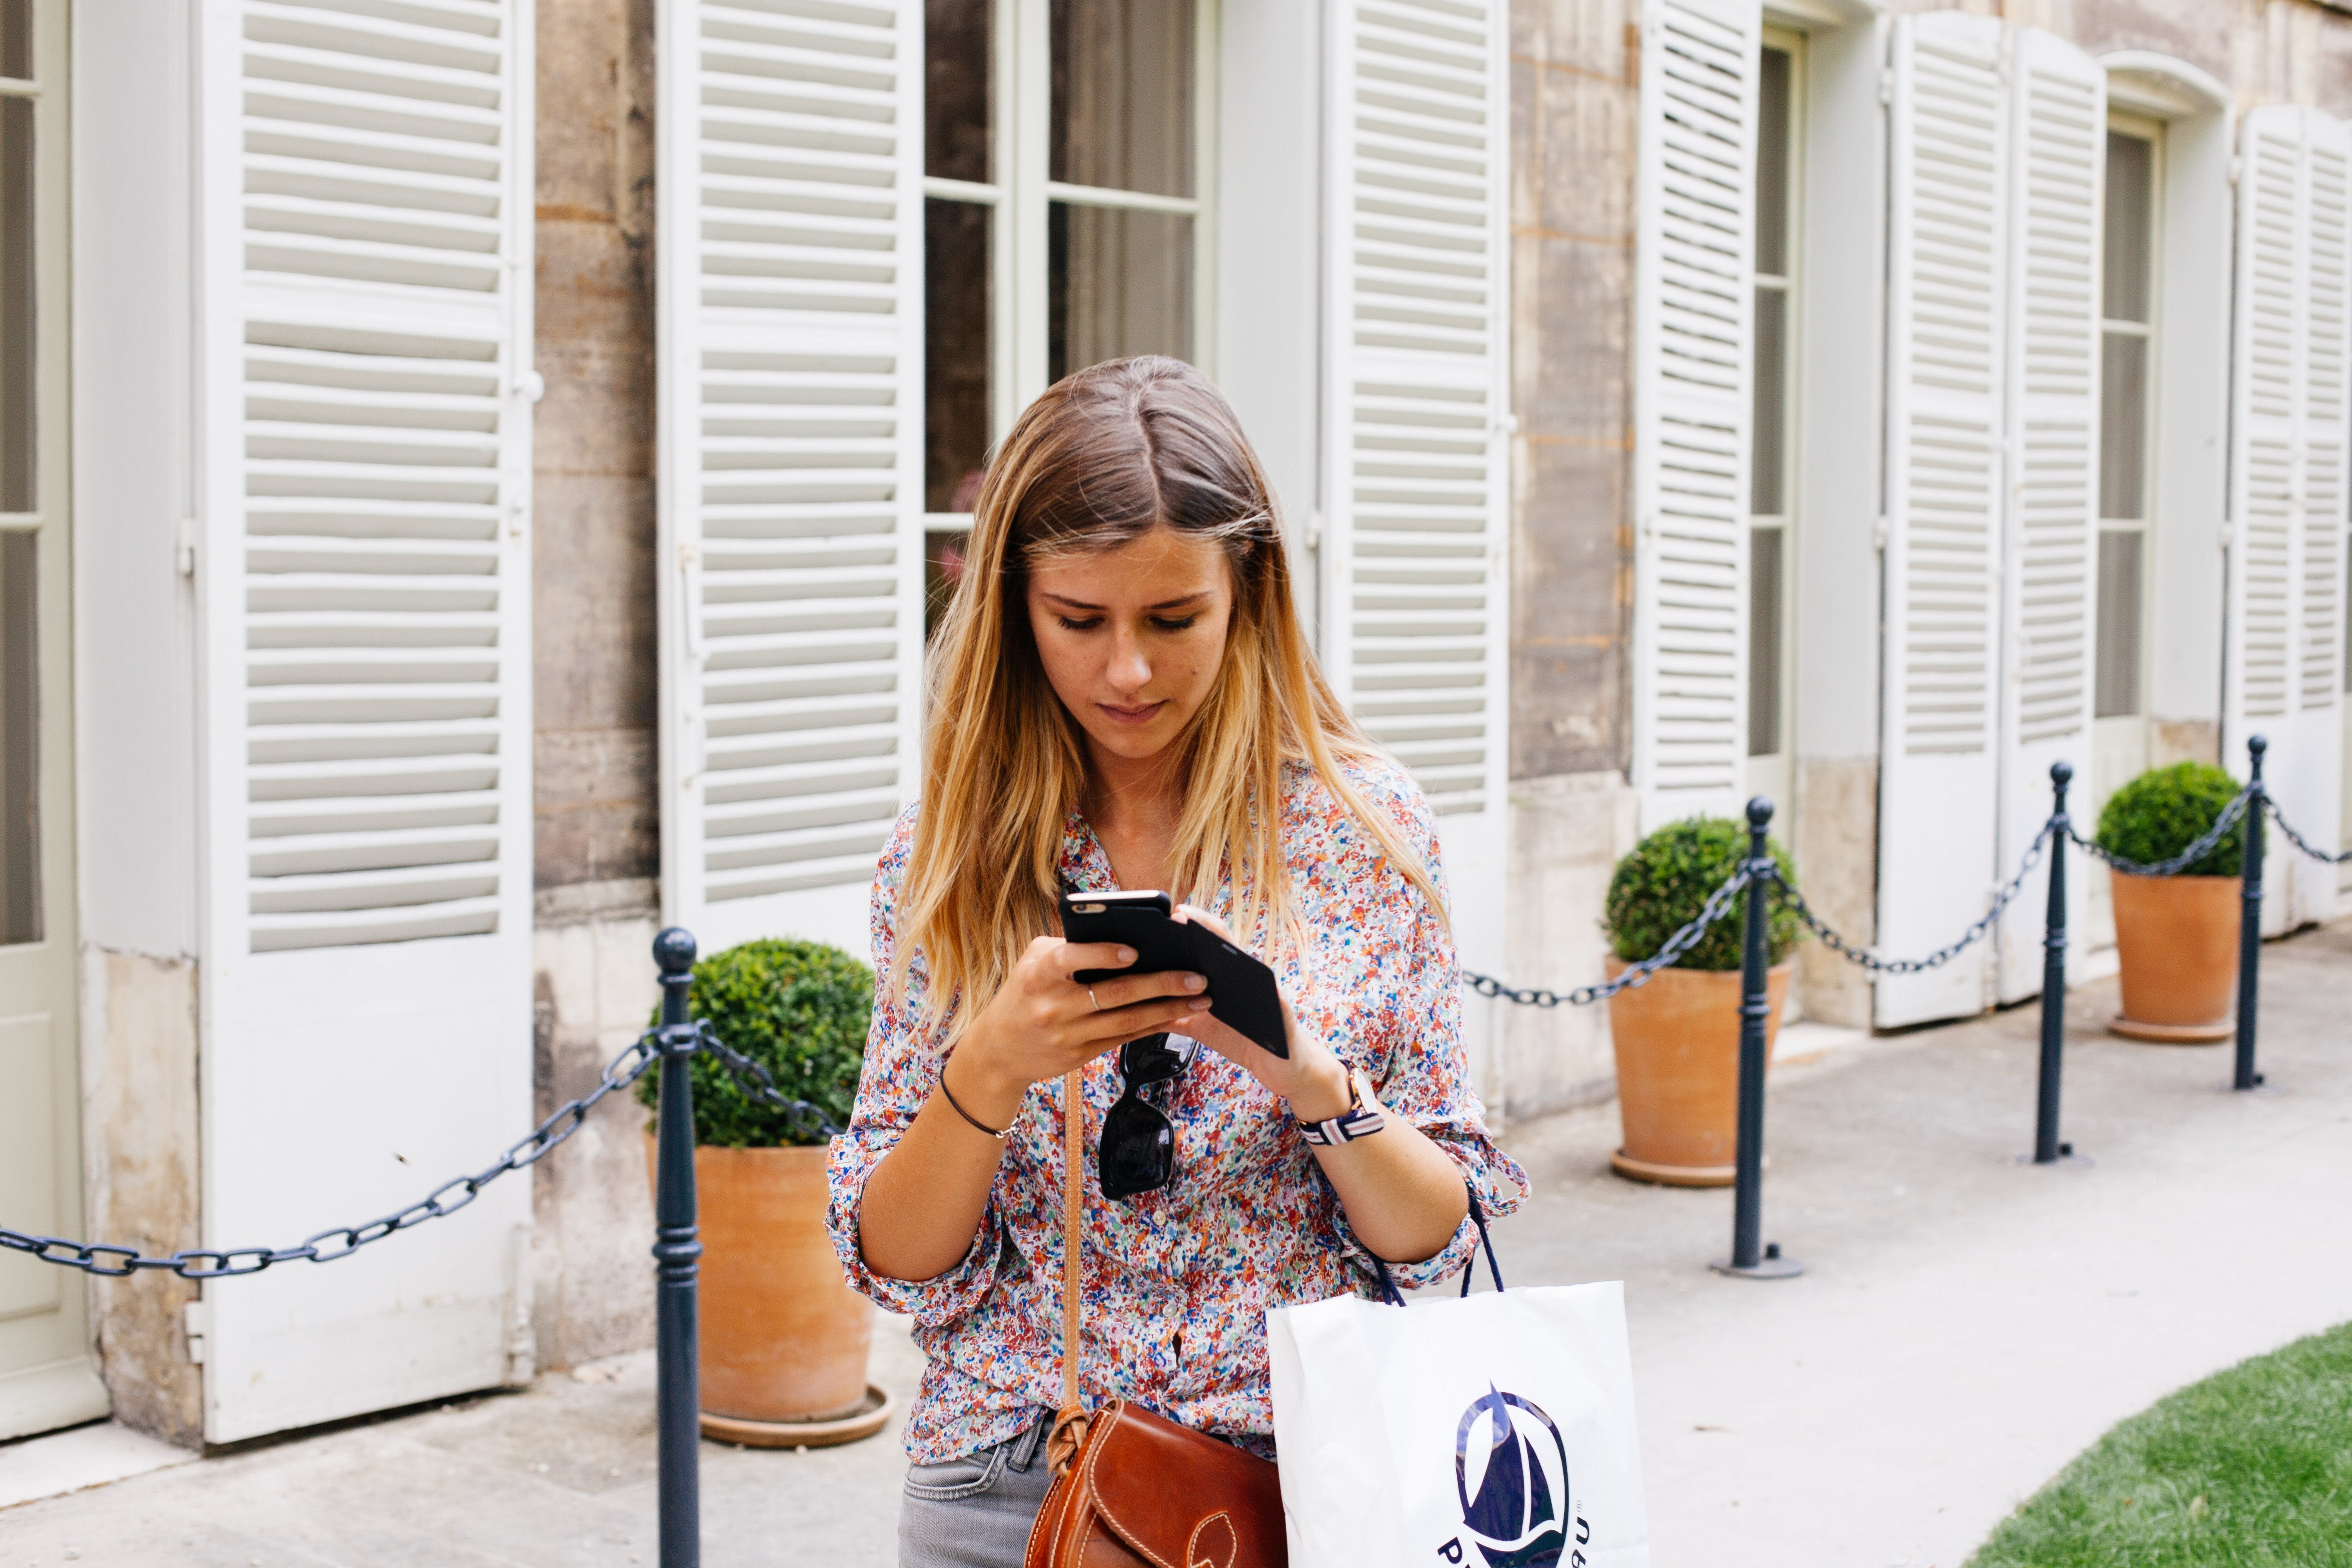 Woman Holding Smartphone Near Building